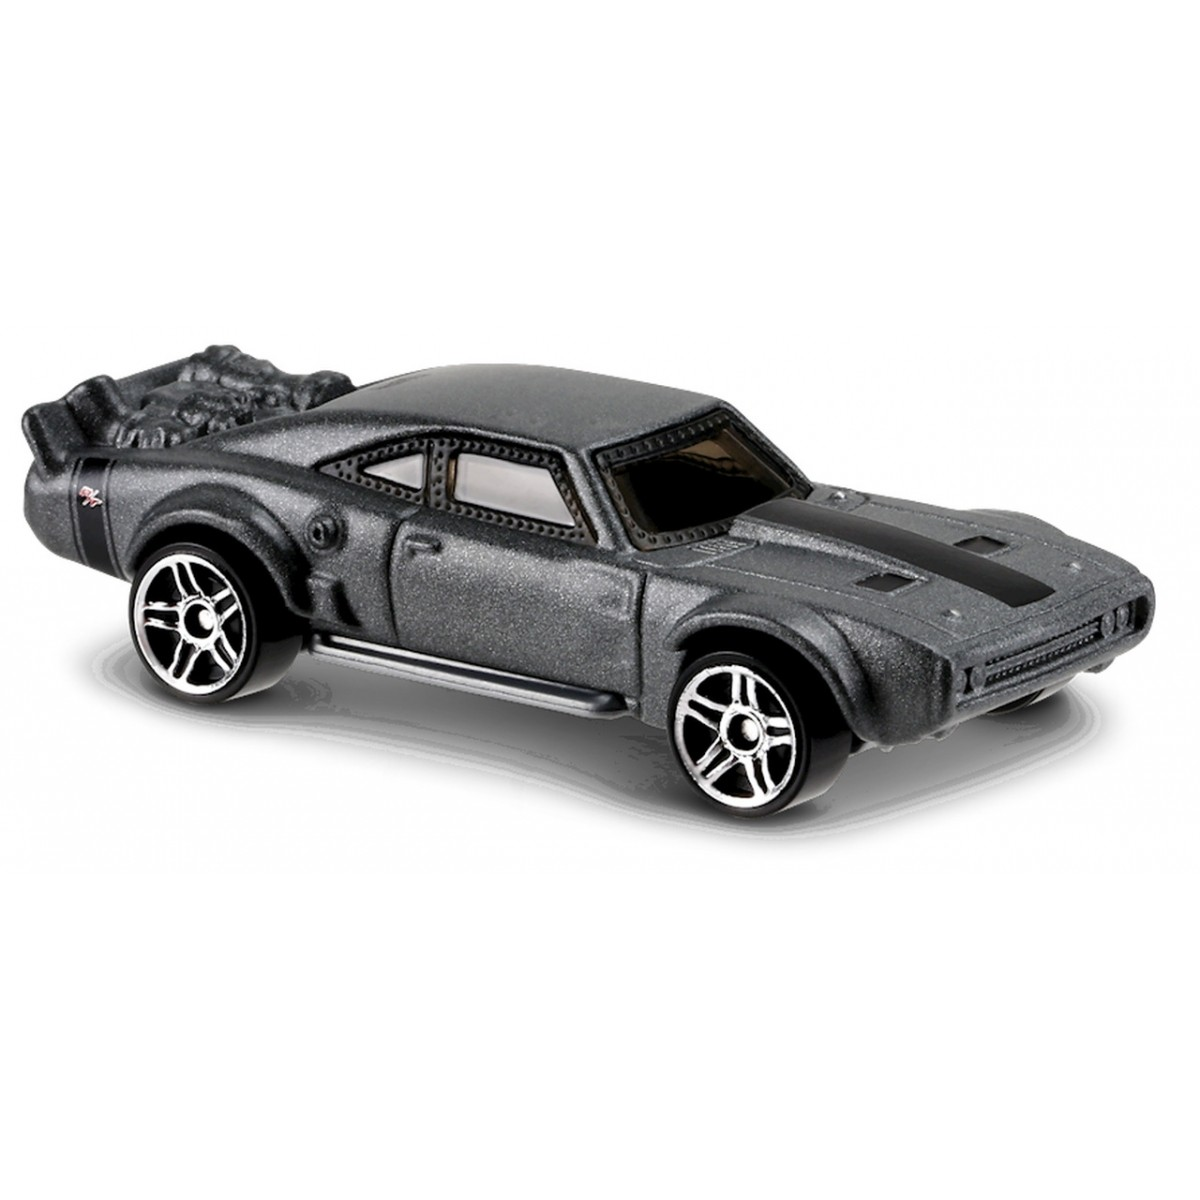 Carrinho Hot Wheels: Ice Charger Chumbo